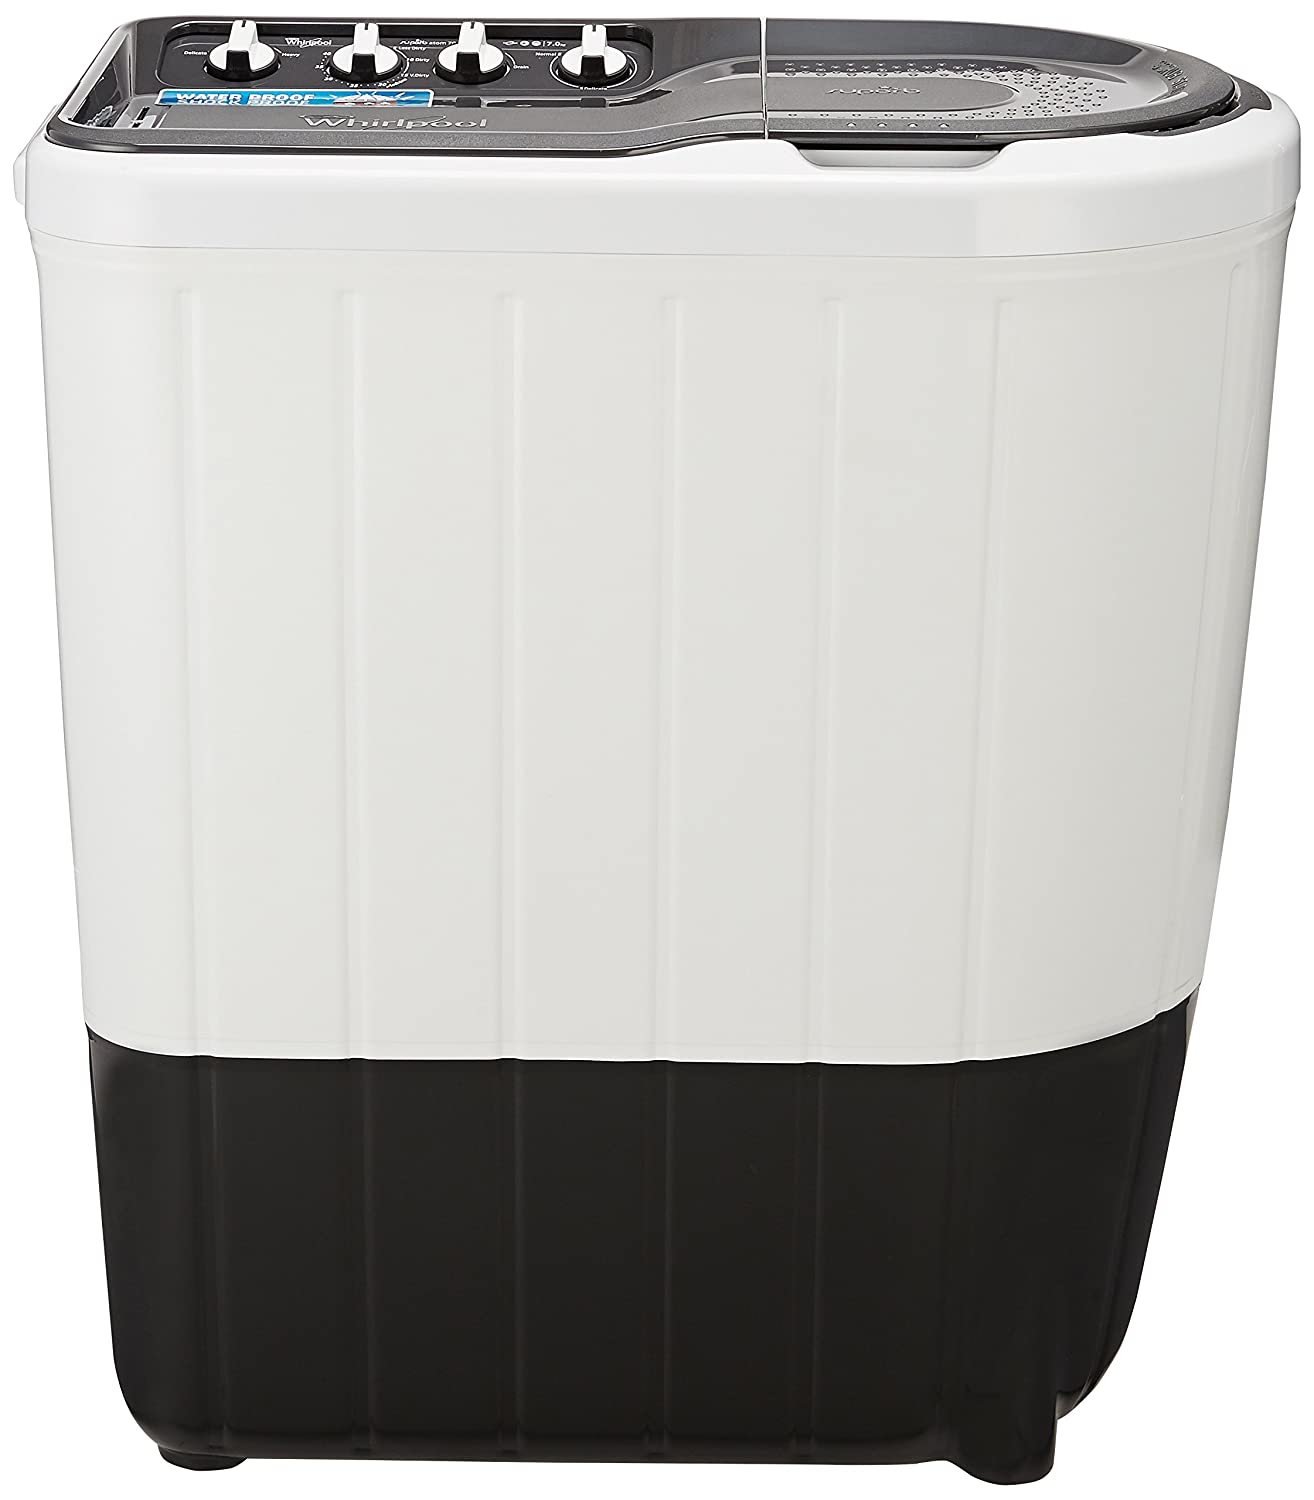 Whirlpool 7 kg Semi-Automatic Top Loading Washing Machine